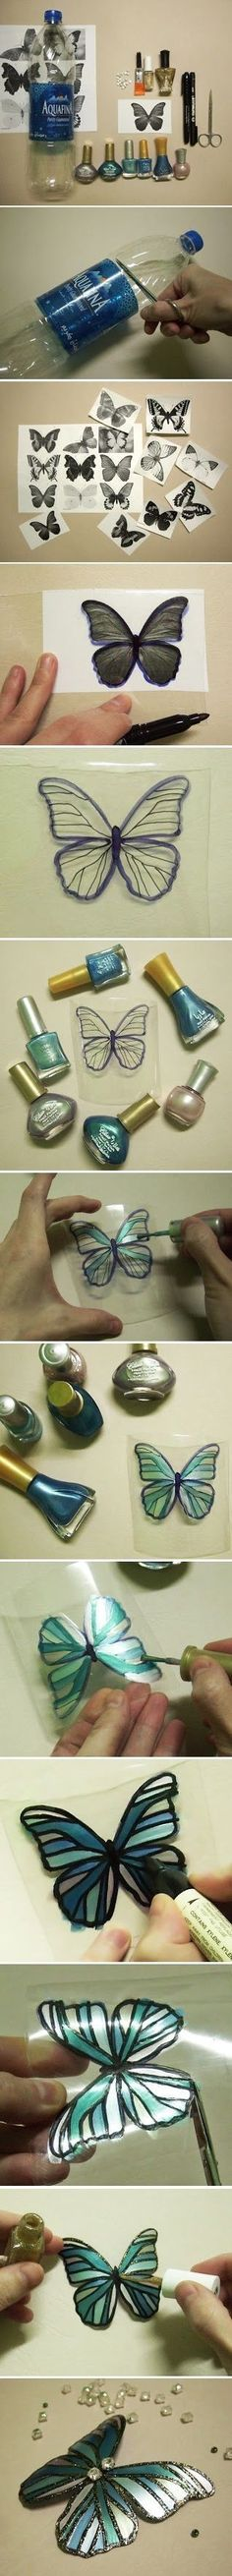 DIY Butterflies Made From Plastic